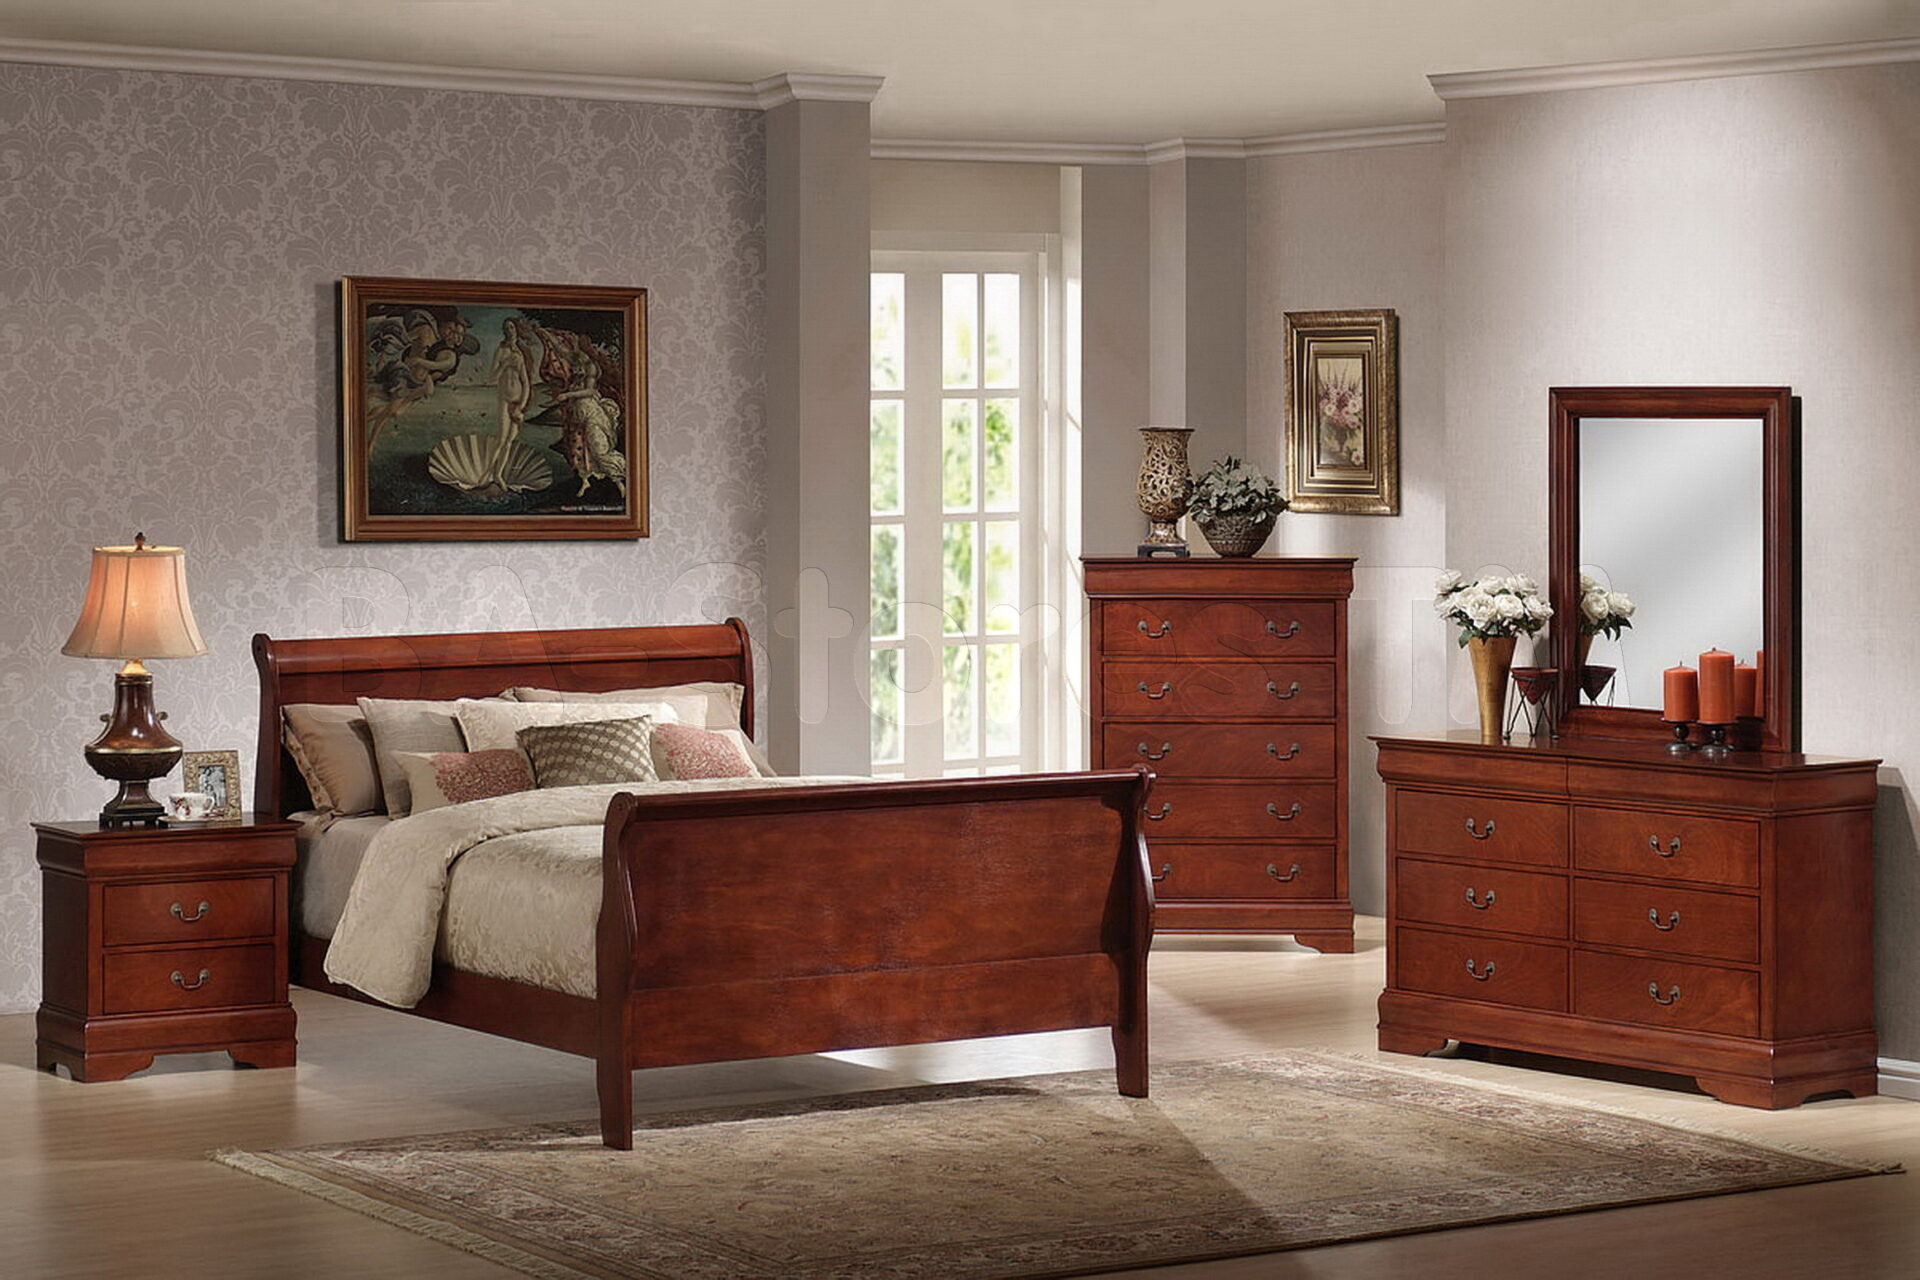 Cherry wood furniture bedroom decor ideas archives for Decorative bedroom furniture